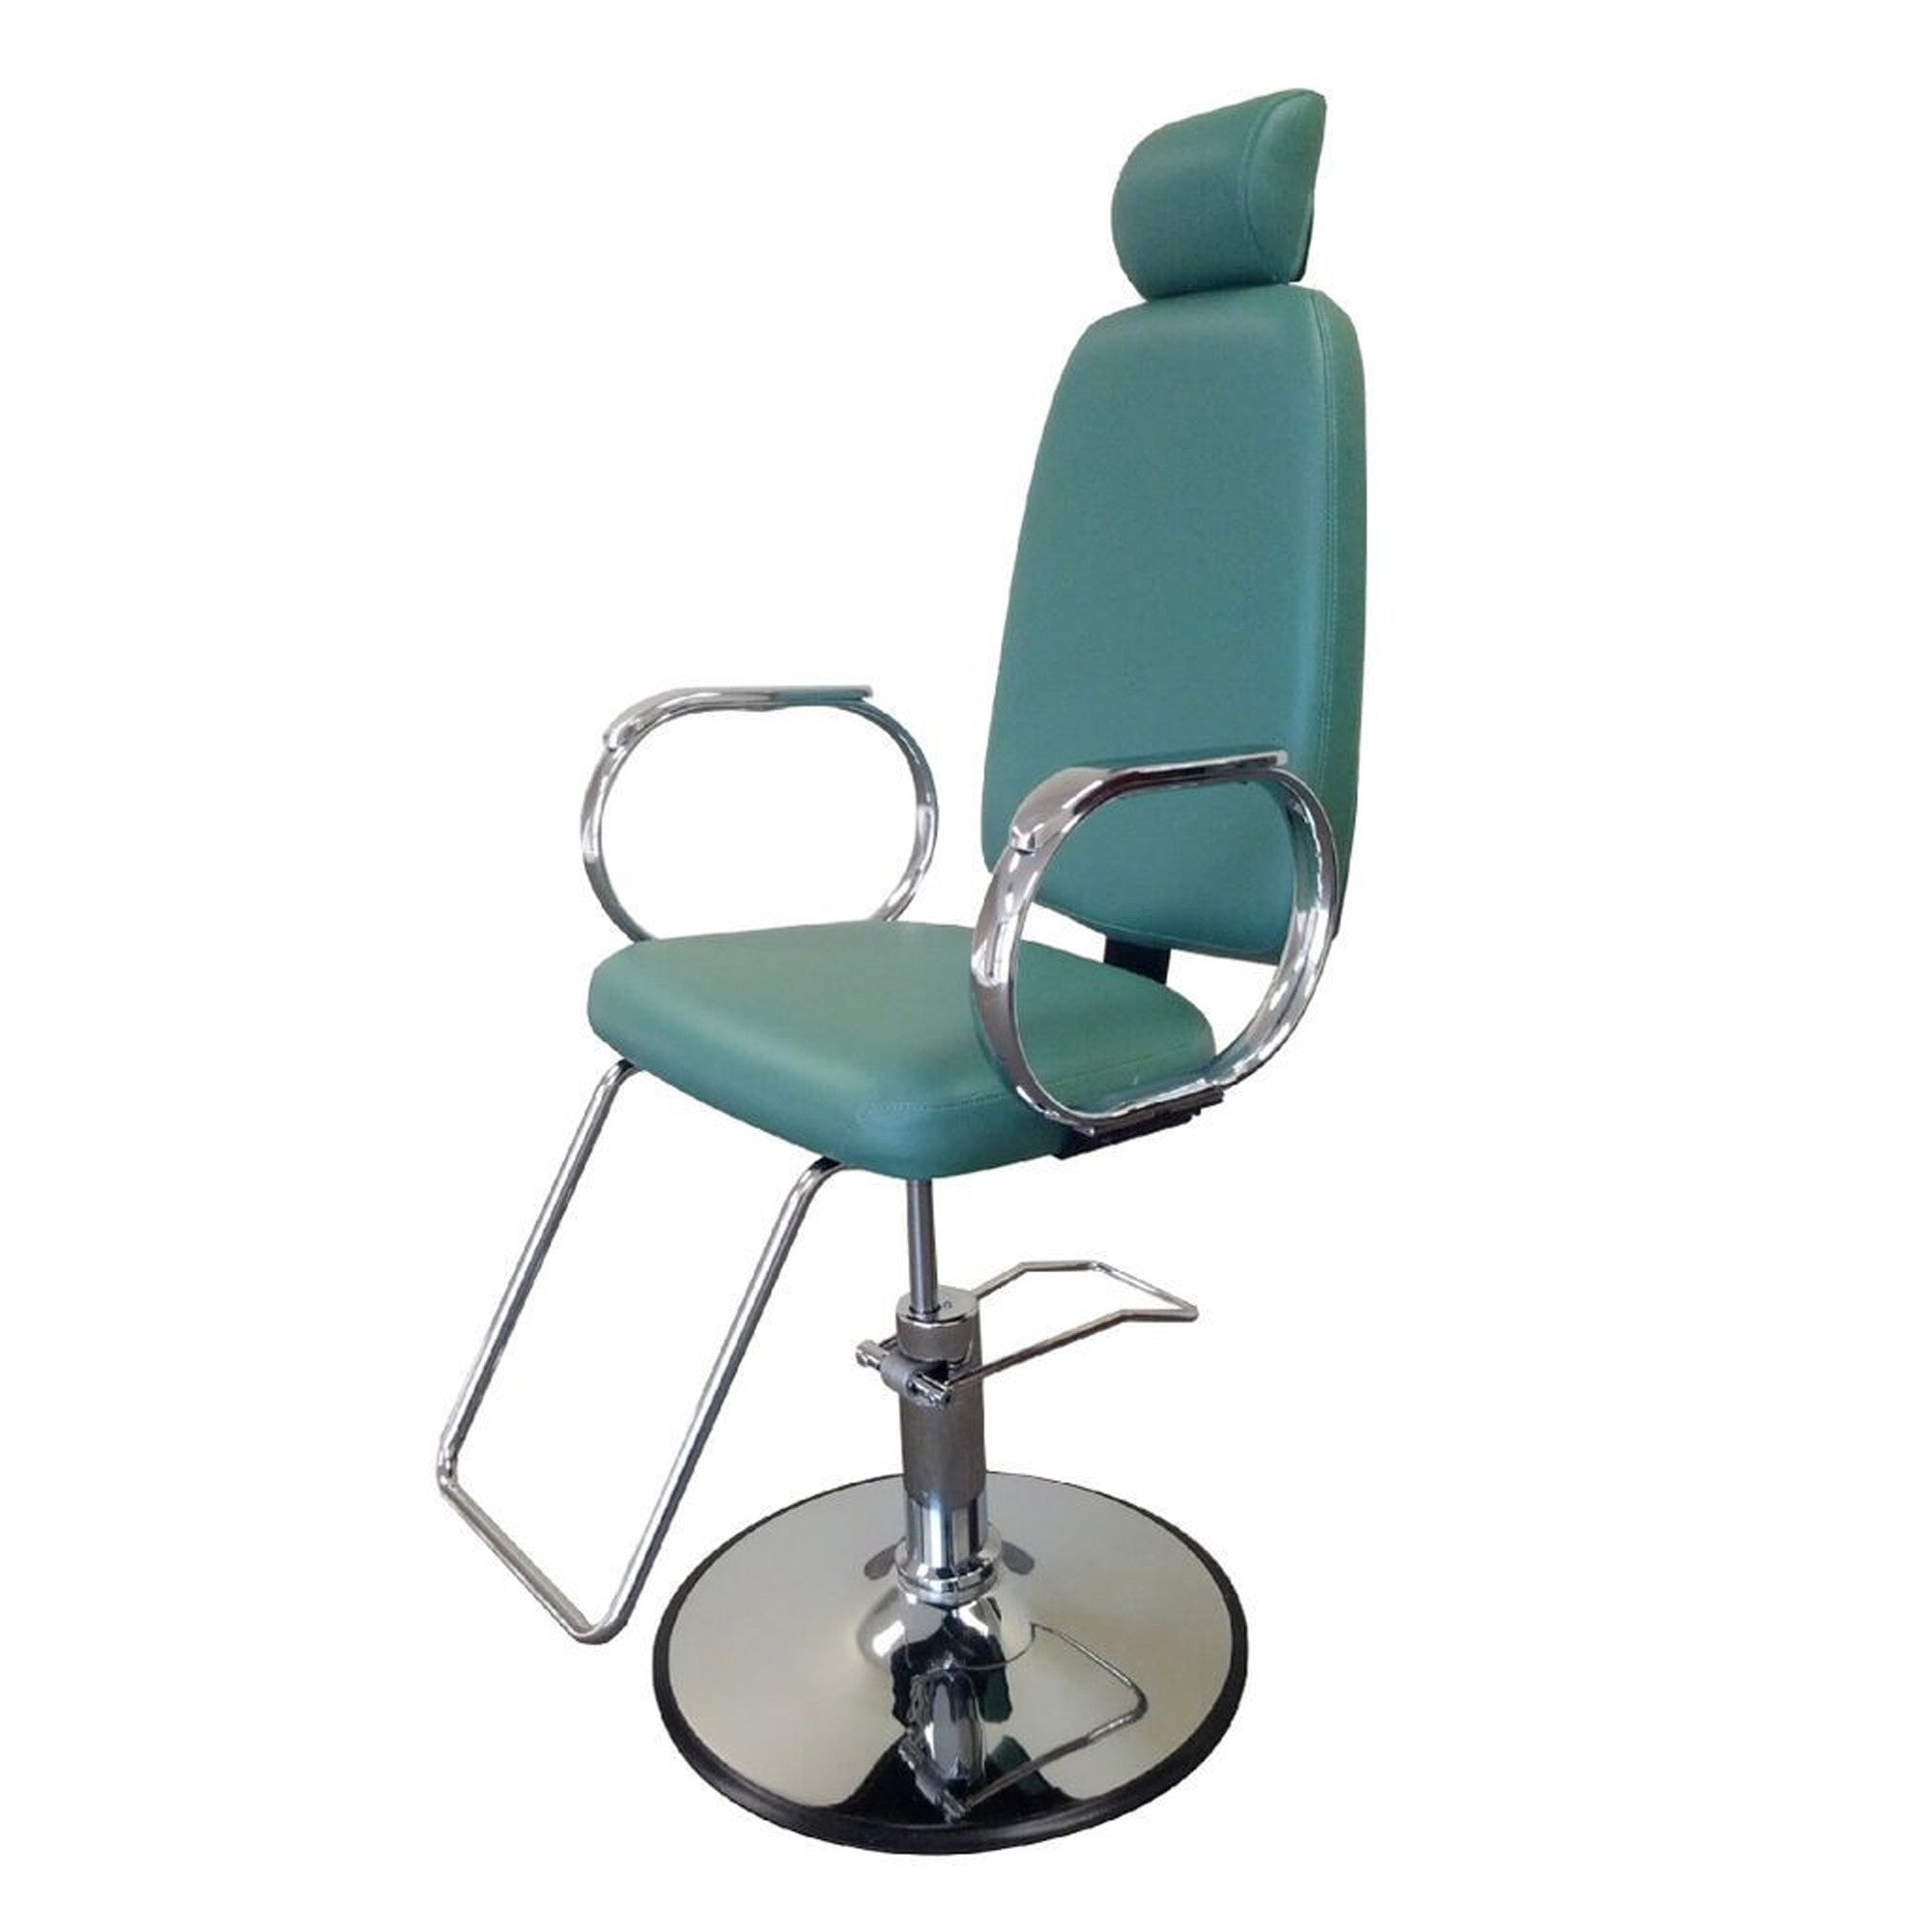 X-RAY CHAIR TPC Advanced Technology, Inc